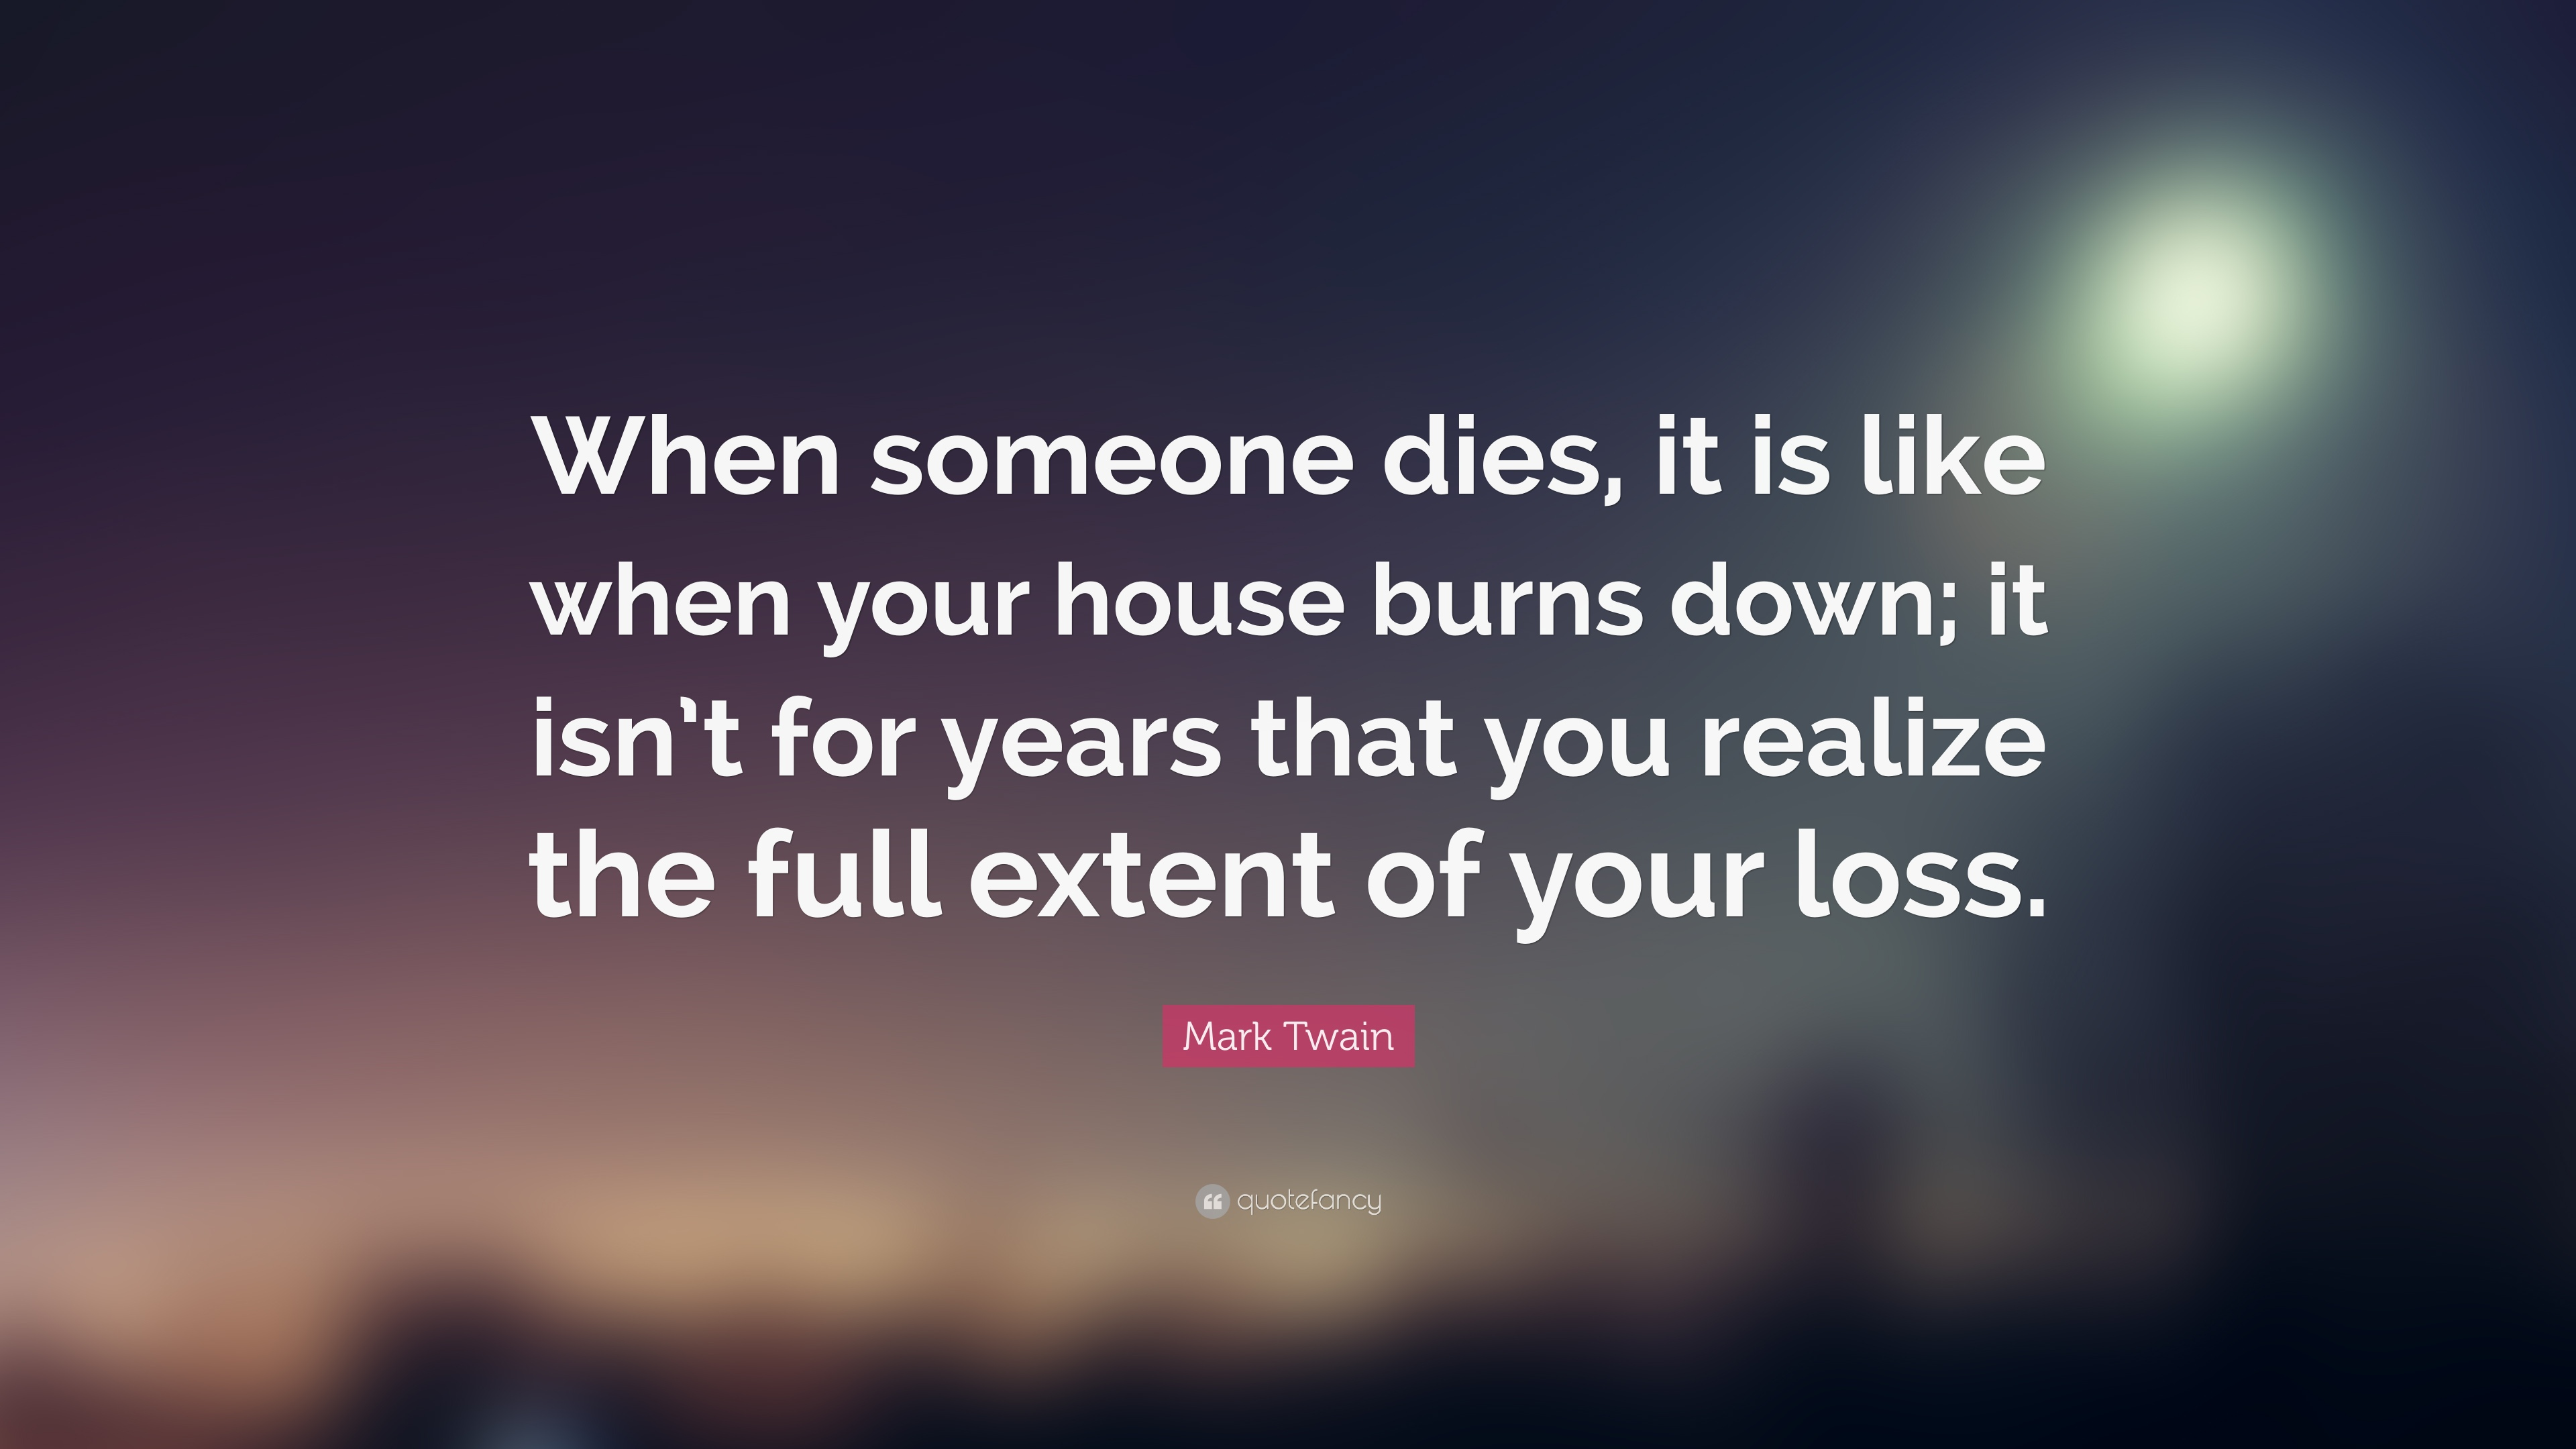 """When Someone Dies Quotes Mark Twain Quote: """"When someone dies, it is like when your house  When Someone Dies Quotes"""